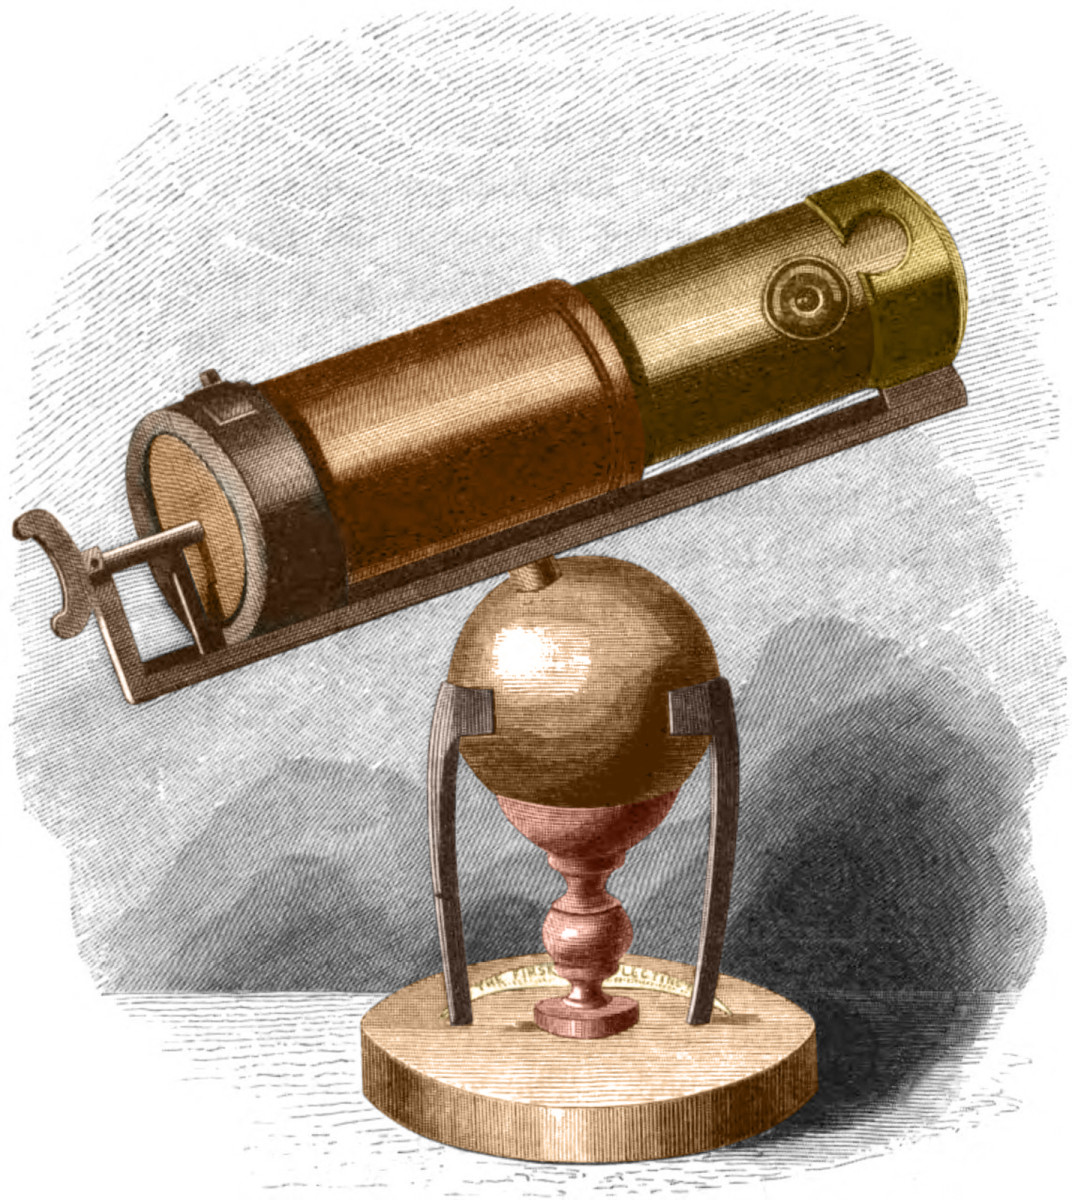 Newton's reflecting telescope.